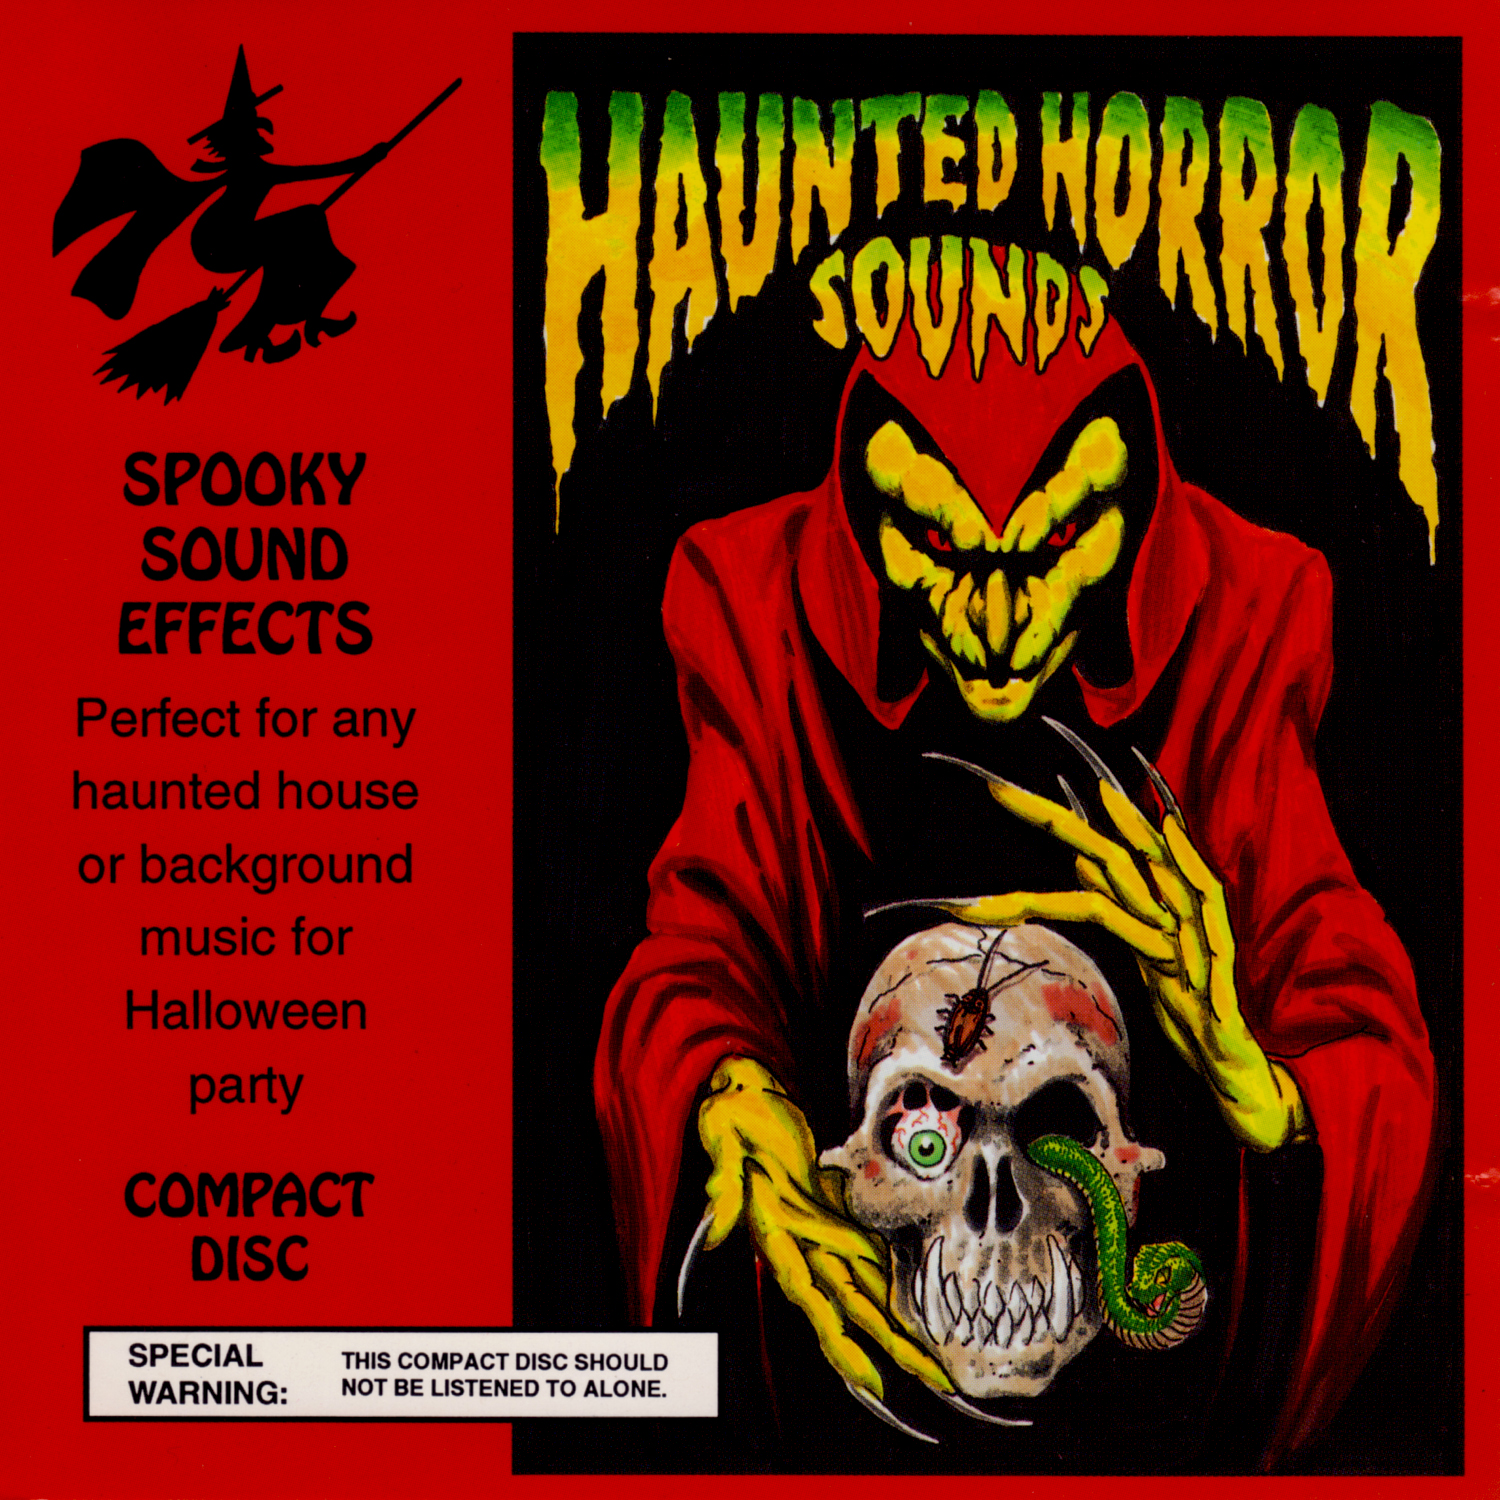 Scary Sounds of Halloween Blog: Haunted Horror Sounds